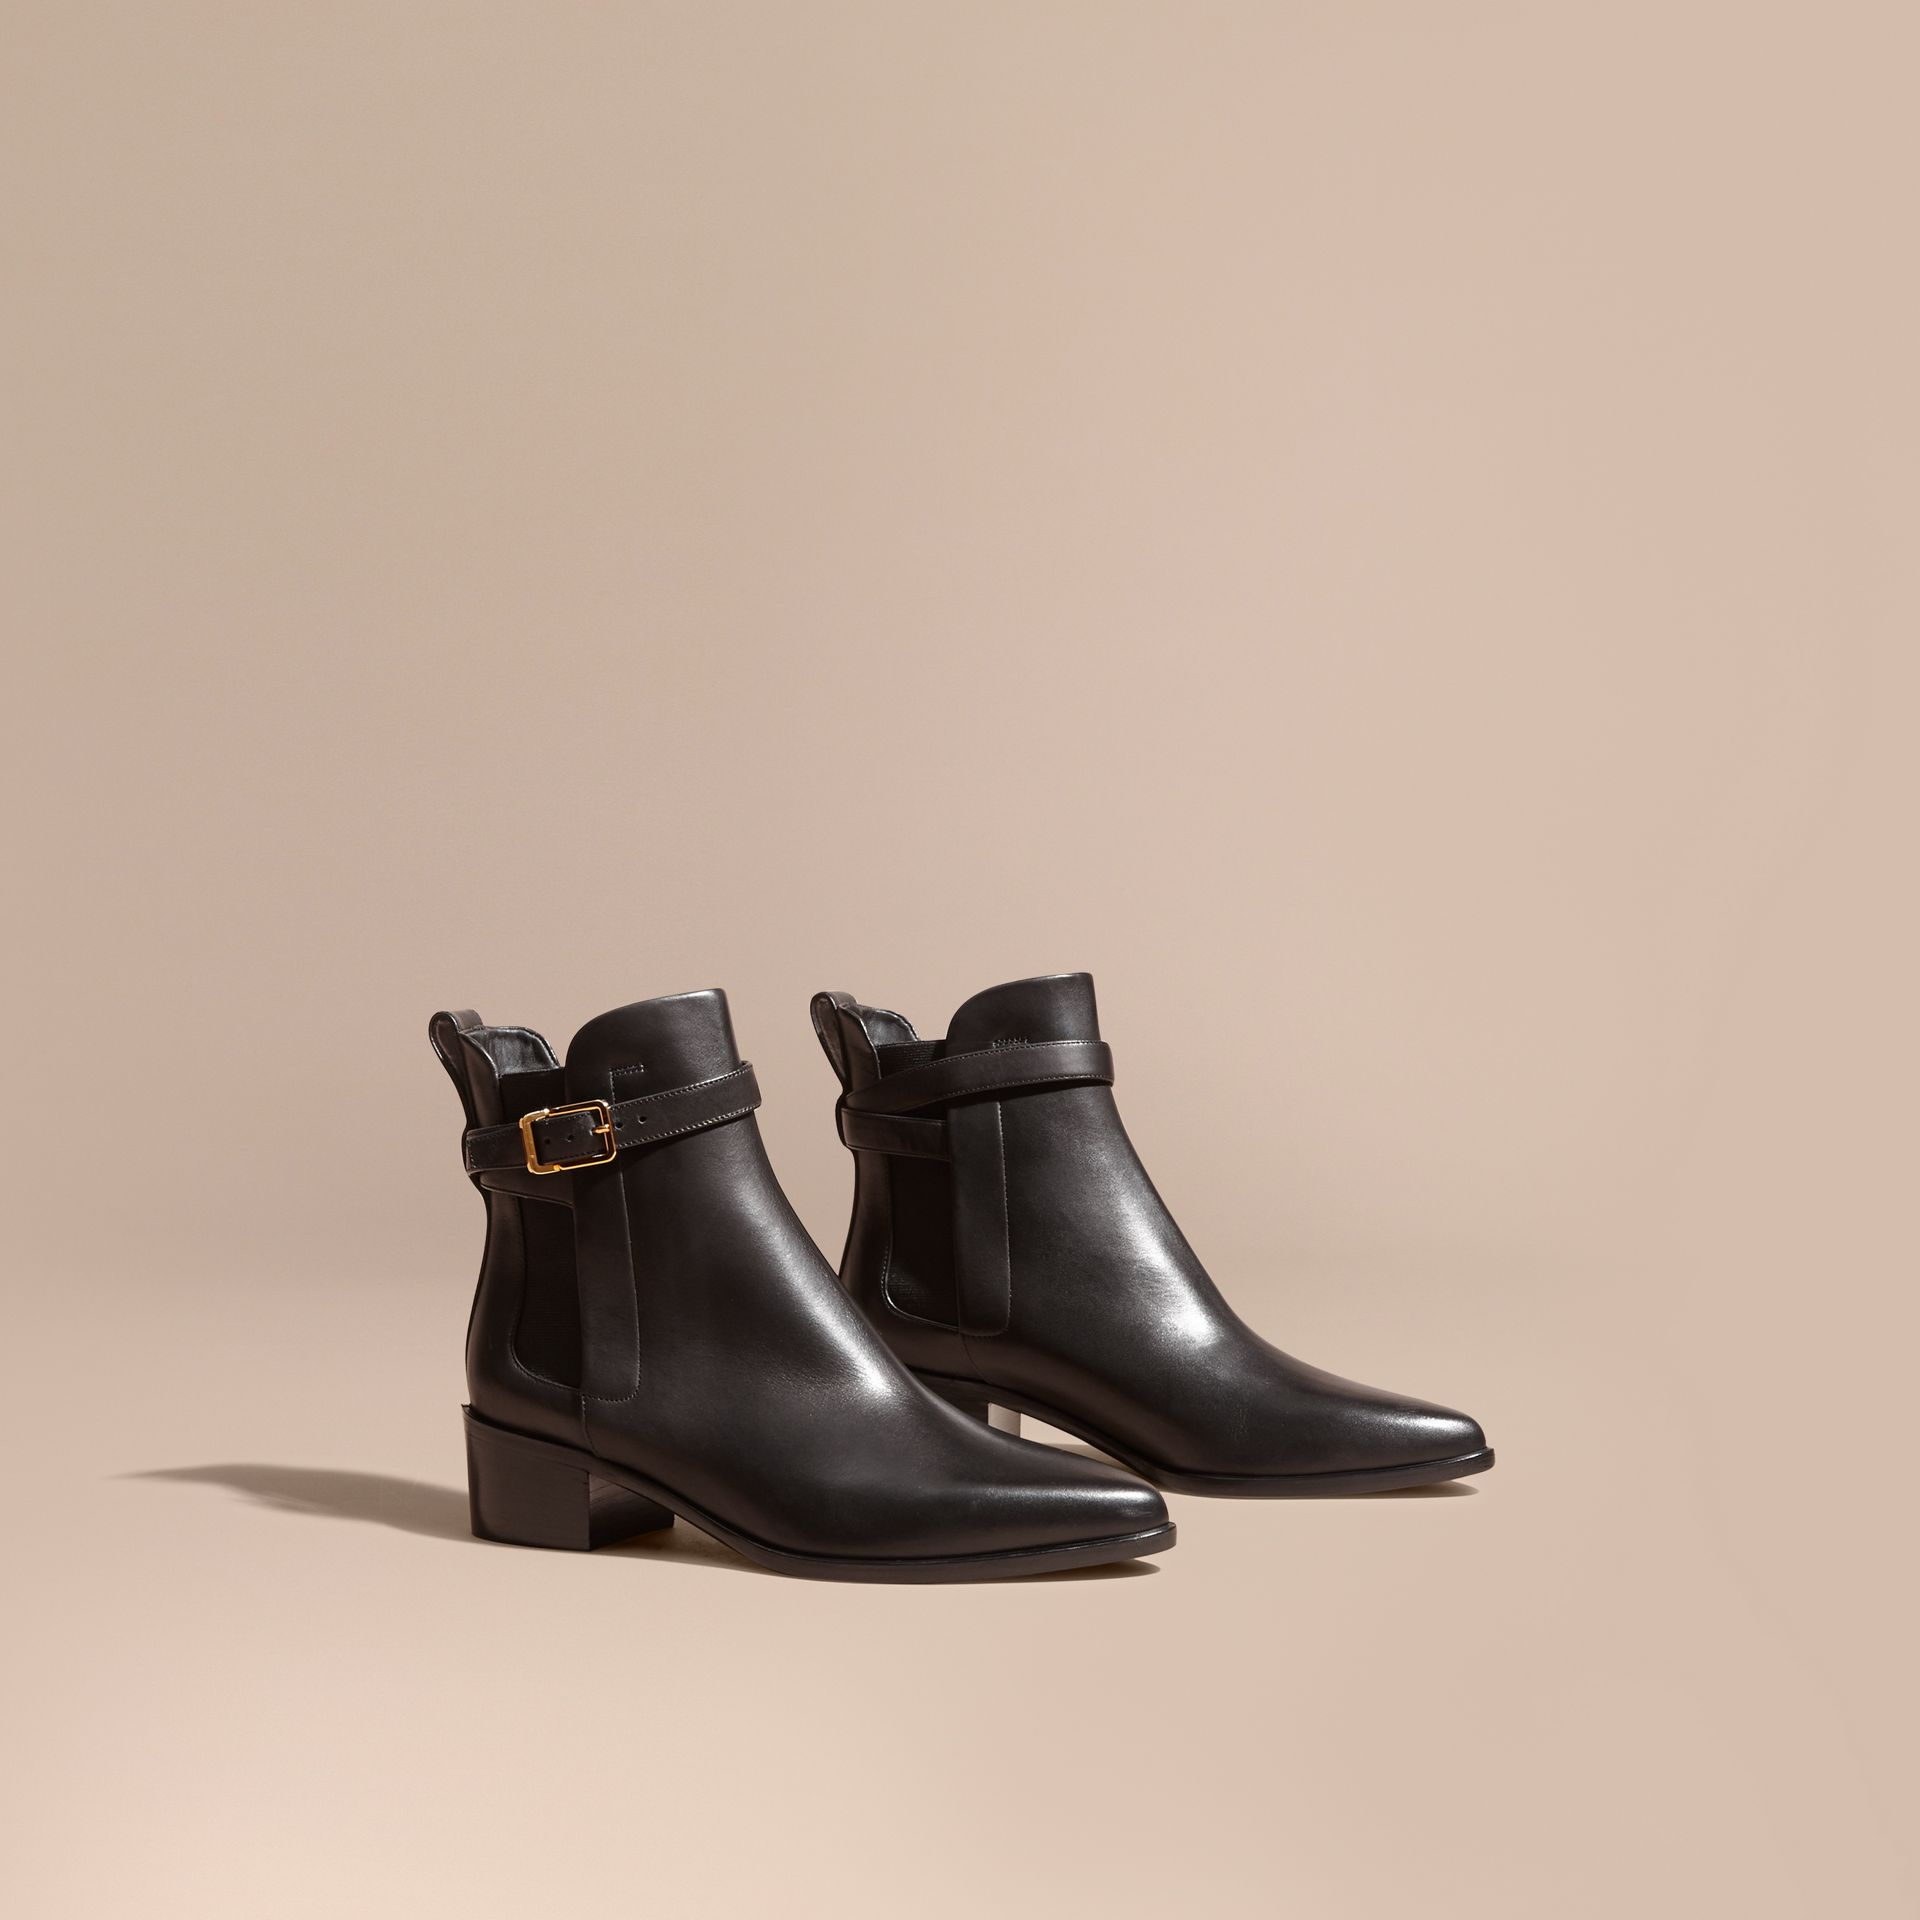 Buckle Detail Leather Chelsea Boots - gallery image 1